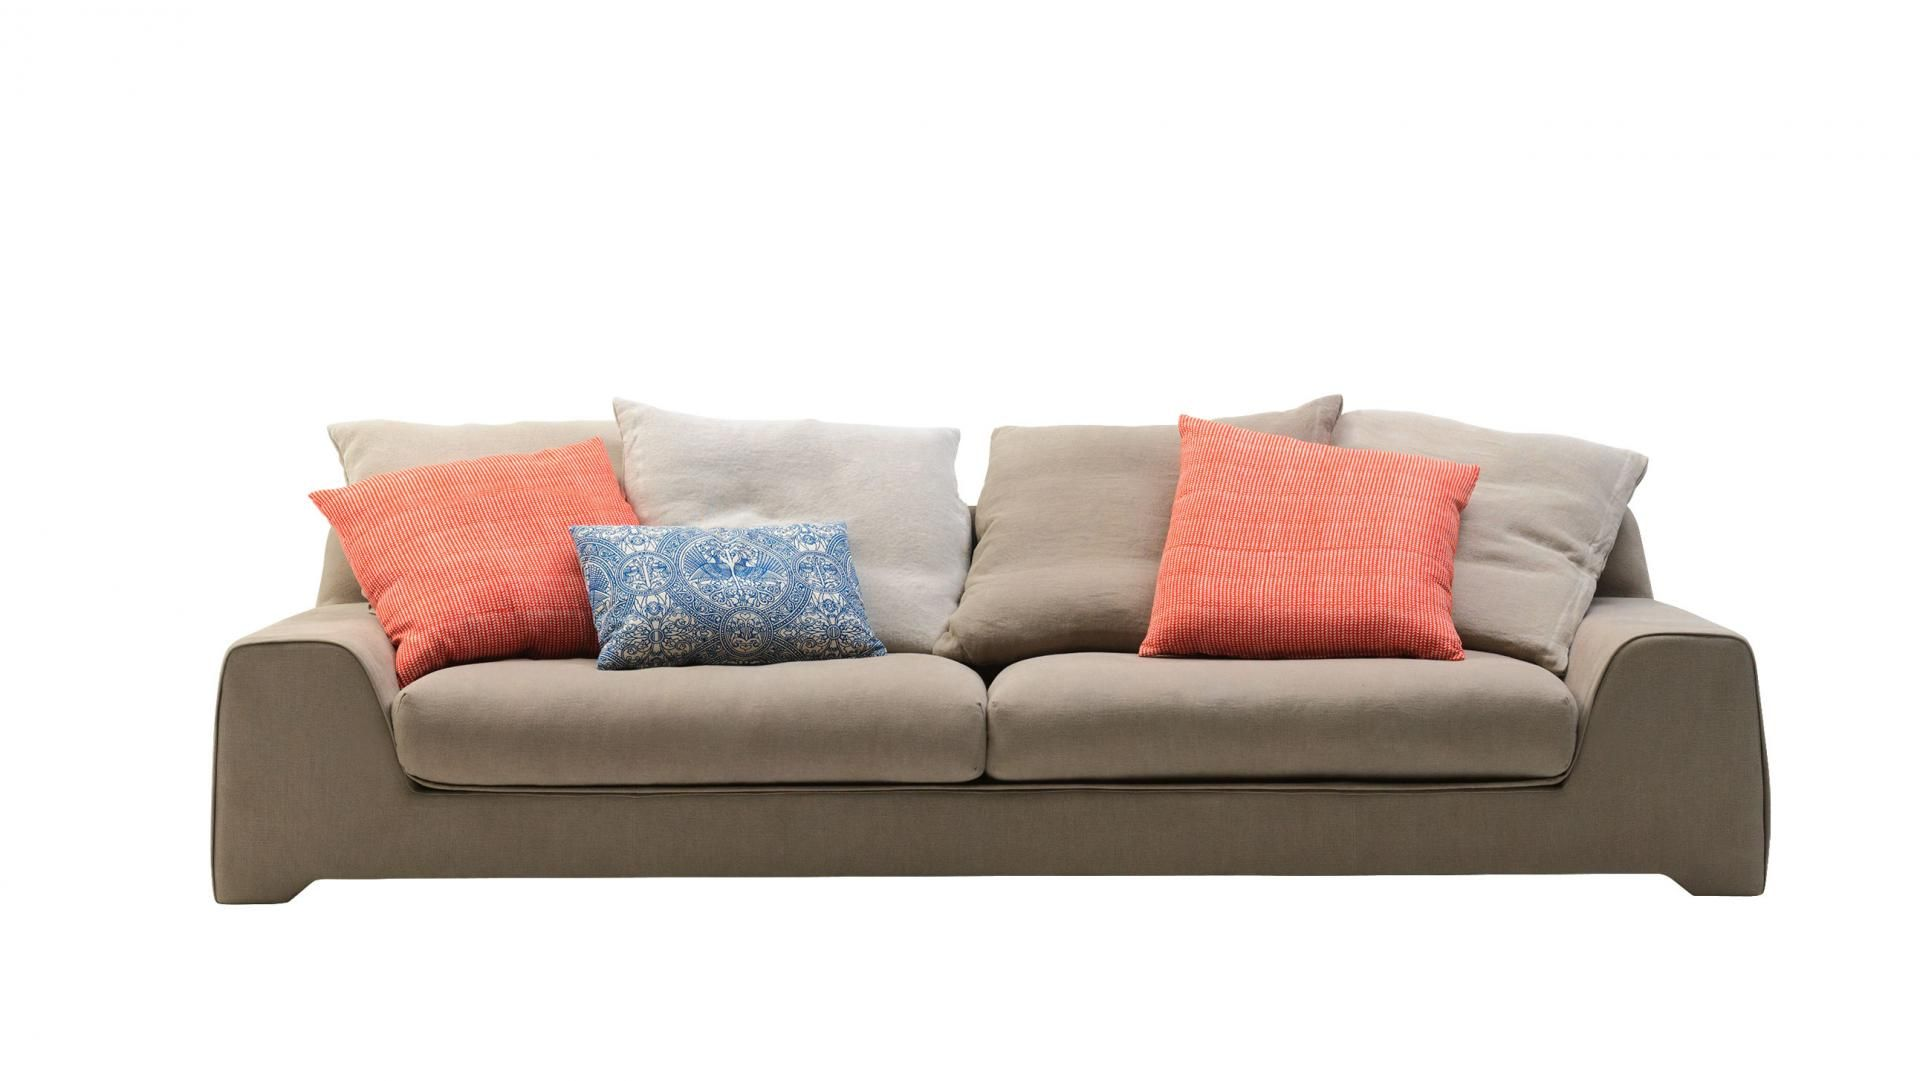 vista sofa from jardanfurniture from the buyer s guide to sofas rh fi pinterest com